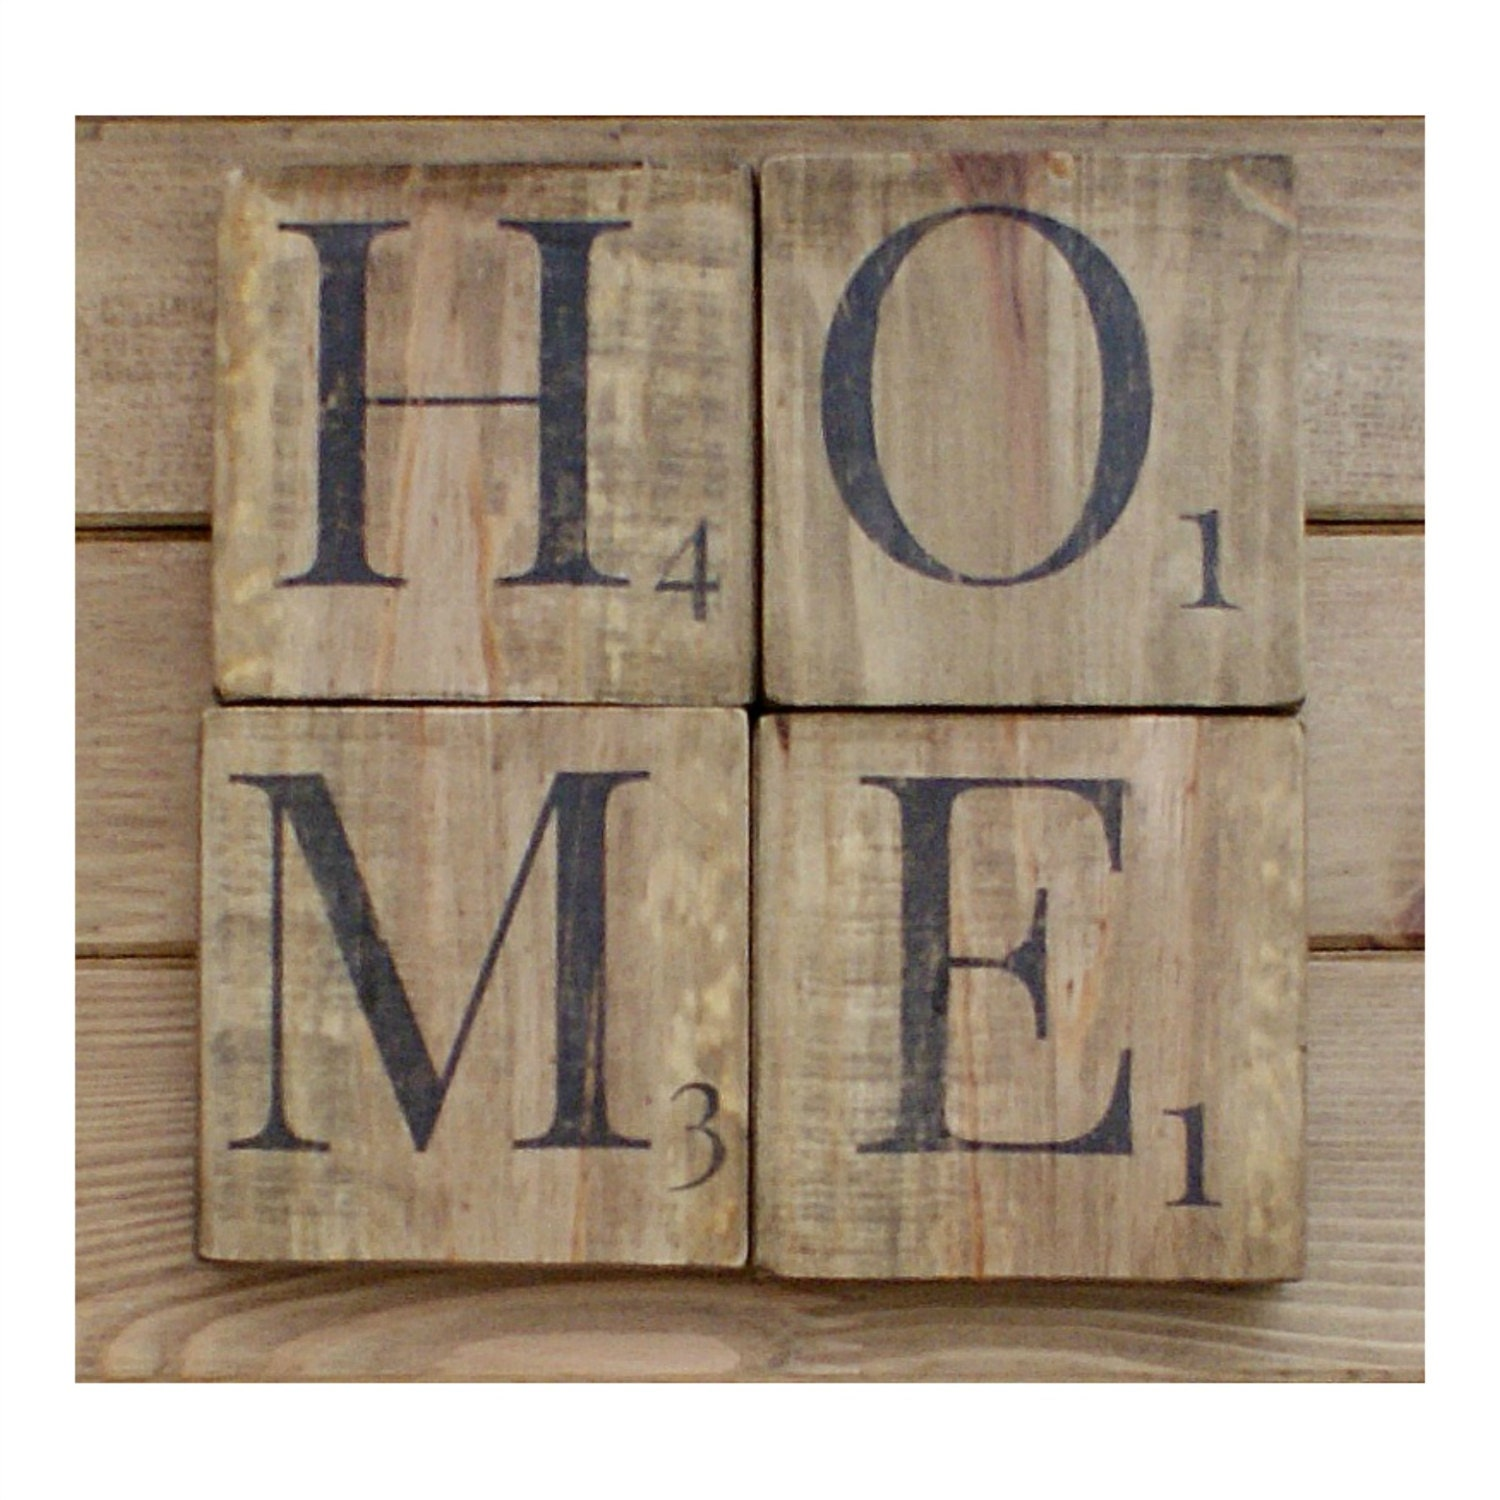 wooden wall letters home sign wooden scrabble letters wood wall reclaimed 25680 | il fullxfull.1054059905 k9d5